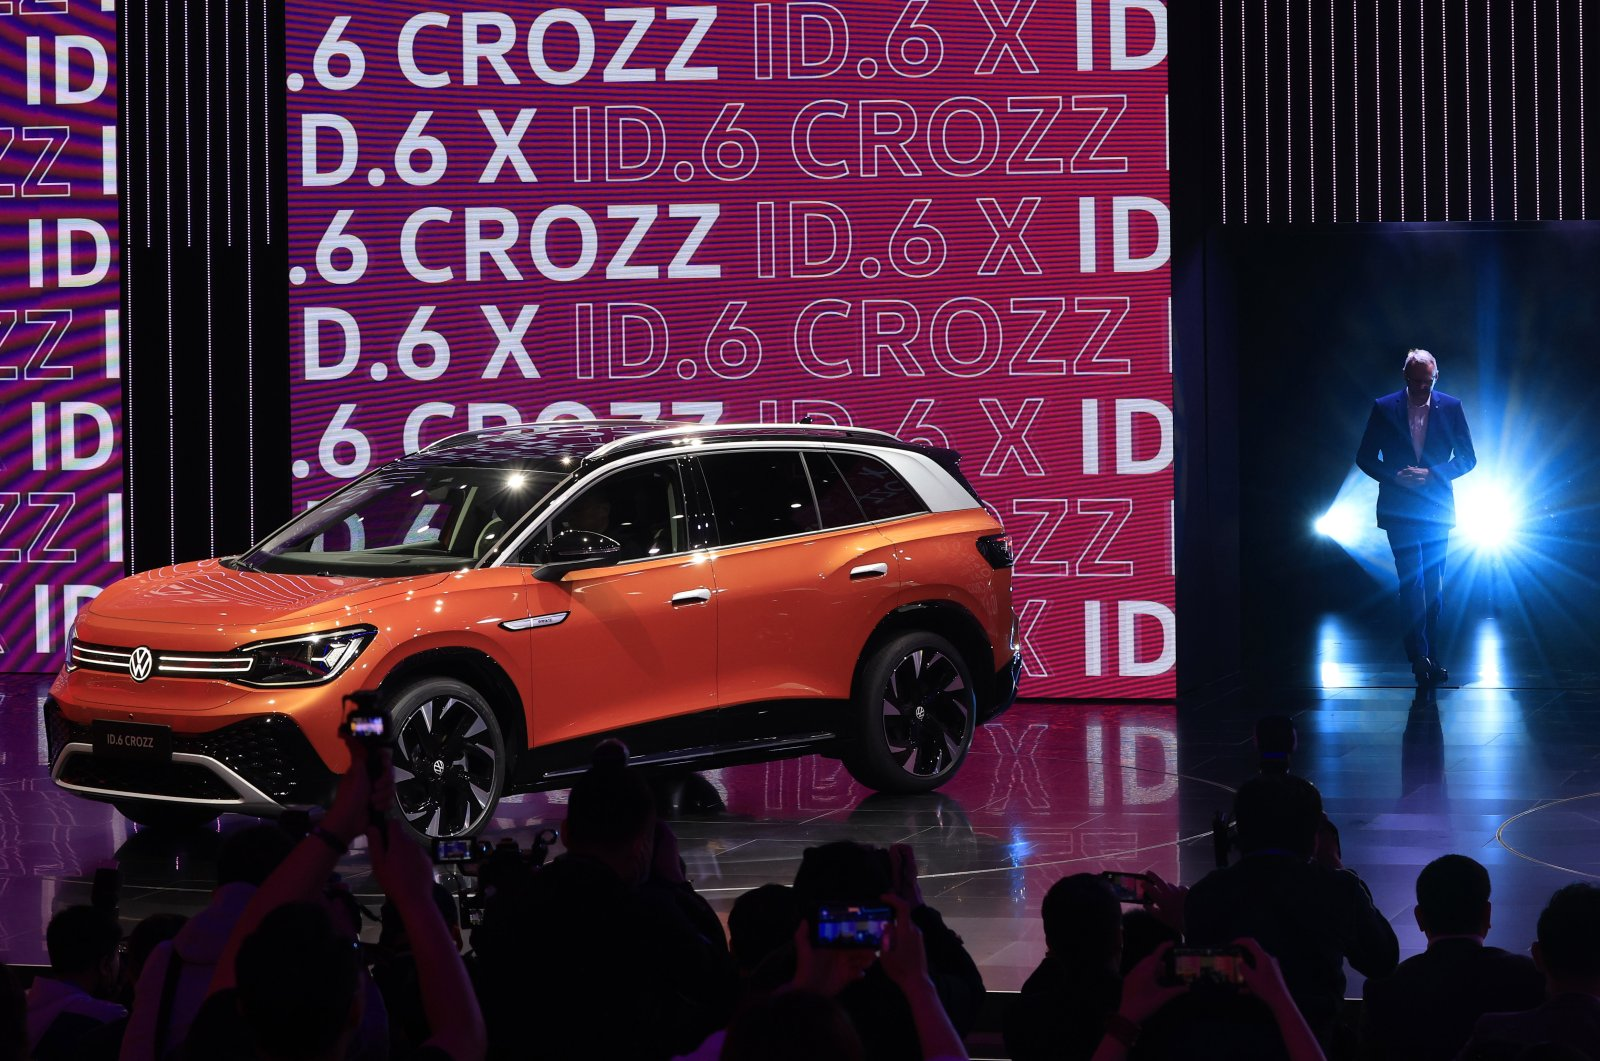 Stephan Wollenstein, CEO of Volkswagen Group China, prepares to present the ID 6 SUV during a launch event at the Shanghai Auto Show in Shanghai, China, April 19, 2021. (AP Photo)